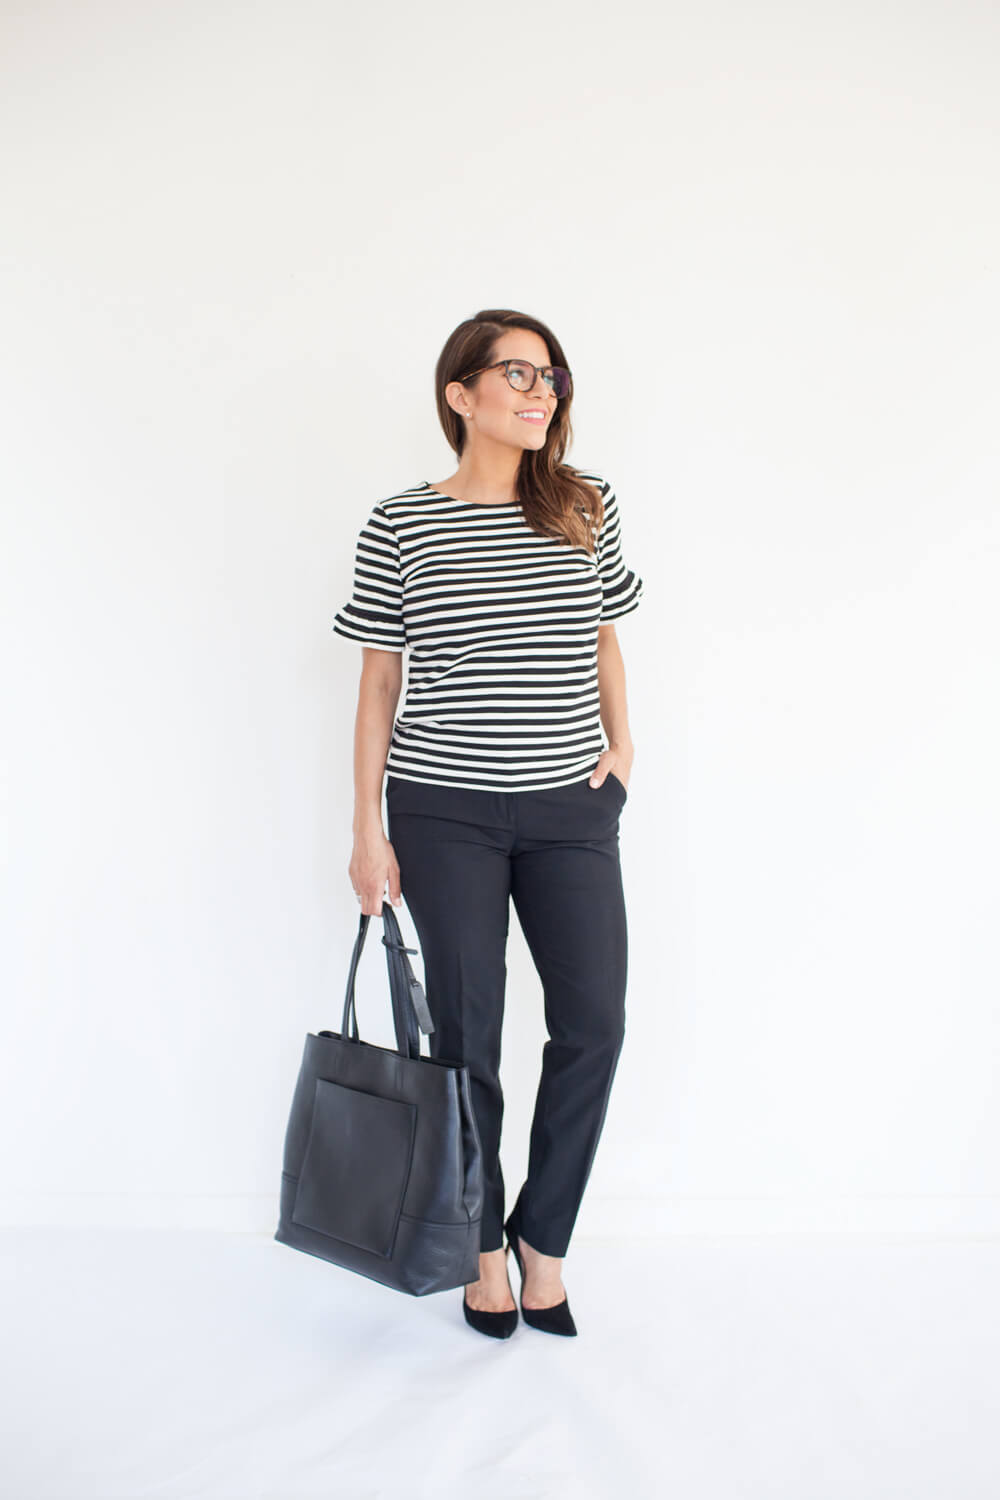 Ultimate Fall Work Wardrobe Capsule Collection Jcrew black leather bag staple pieces outfit ideas New york nyc fashion blogger corporate catwalk15